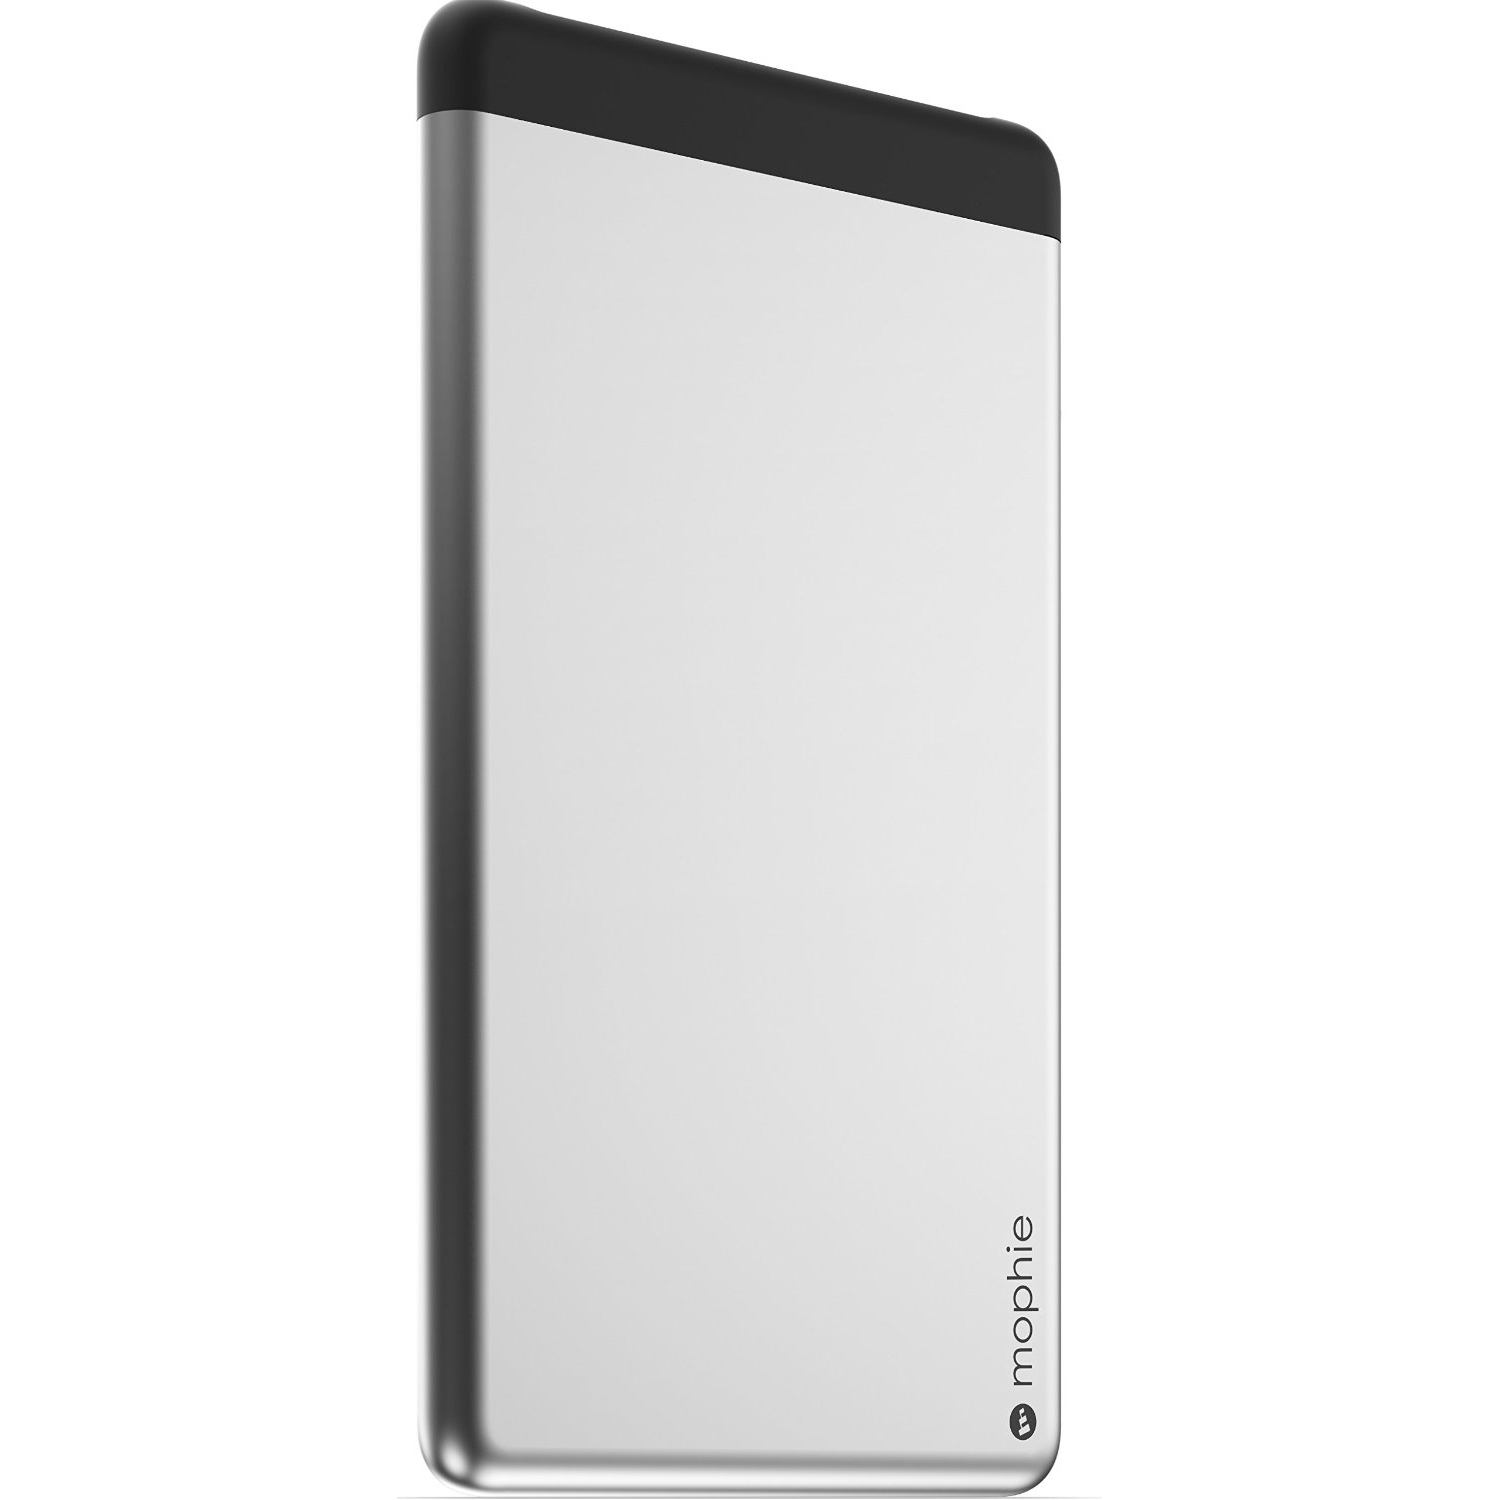 Mophie Powerstation Powerbank Charger 5X for Smartphones and Tablets (10,000 mAh) [Aluminum]